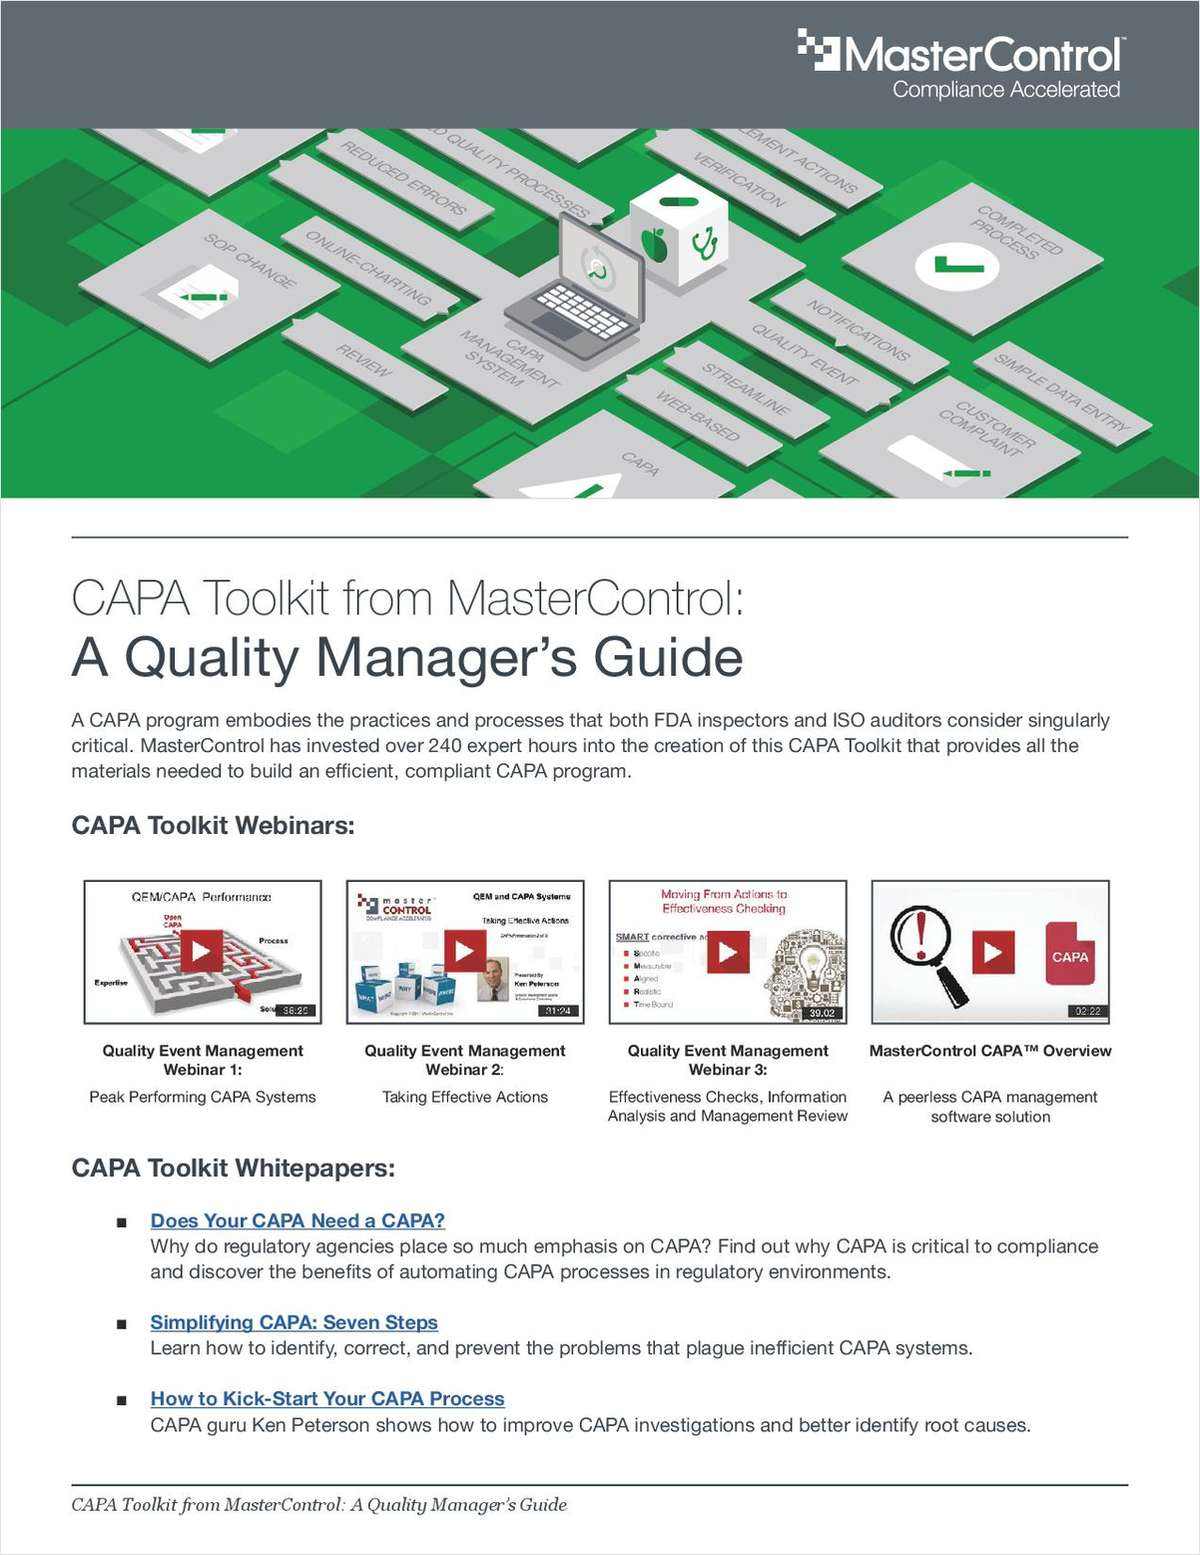 9 Free Resources to Help Pharma Companies Boost CAPA Management